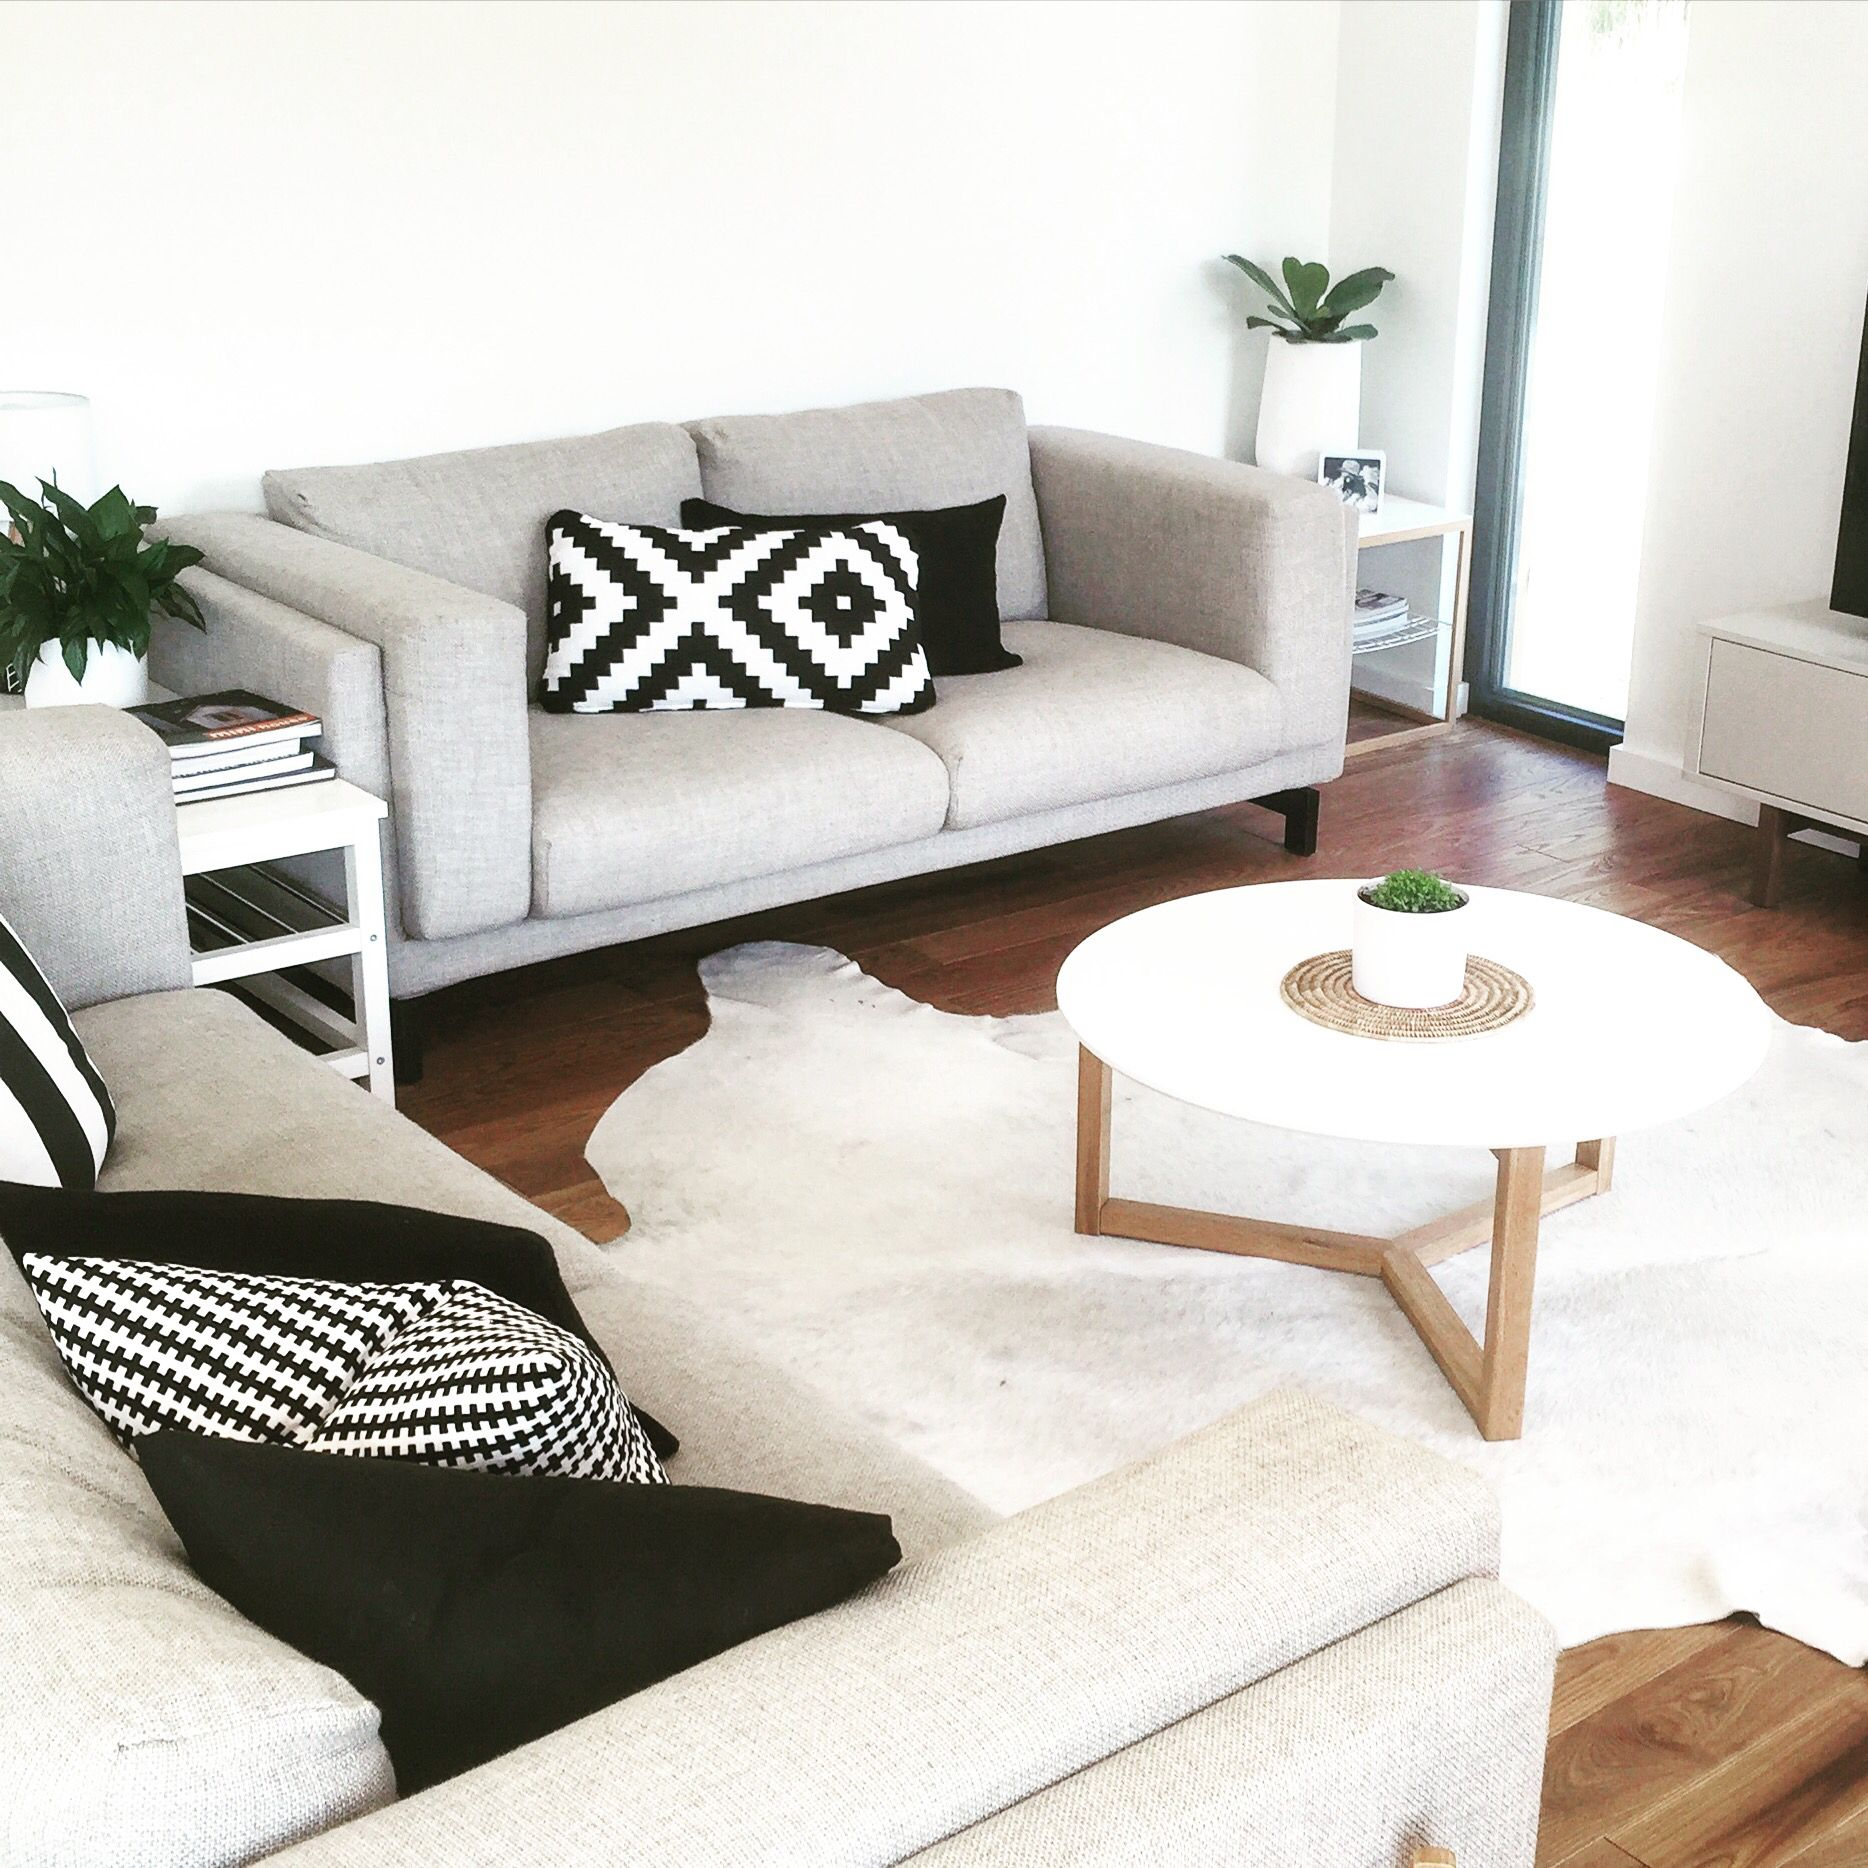 The IKEA Home Tour Squad updated the living room with the NOCKEBY